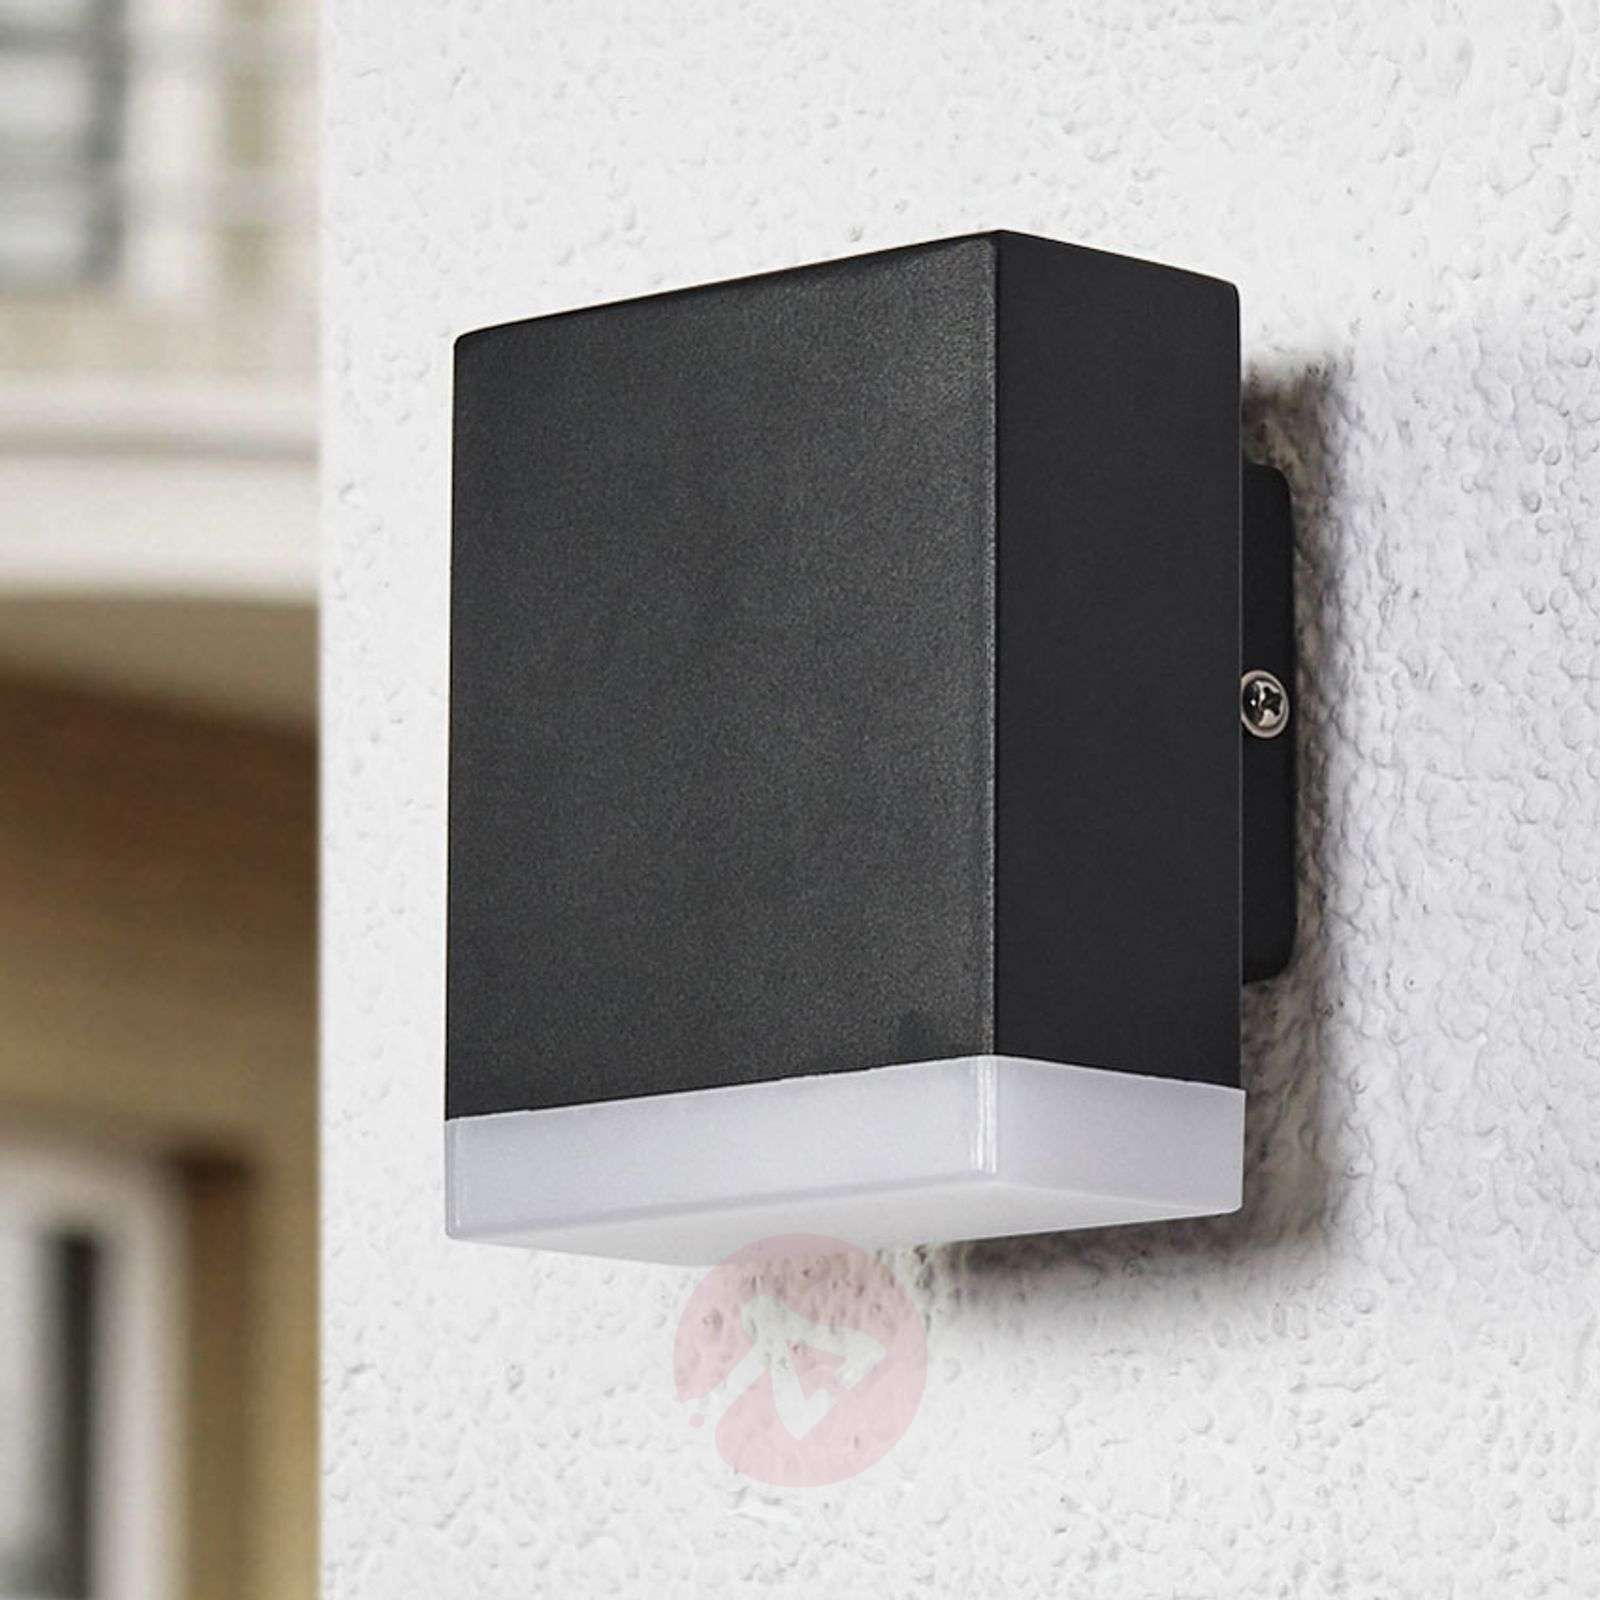 Compra aplique de pared exterior led moderno aya negro for Apliques de pared exterior led